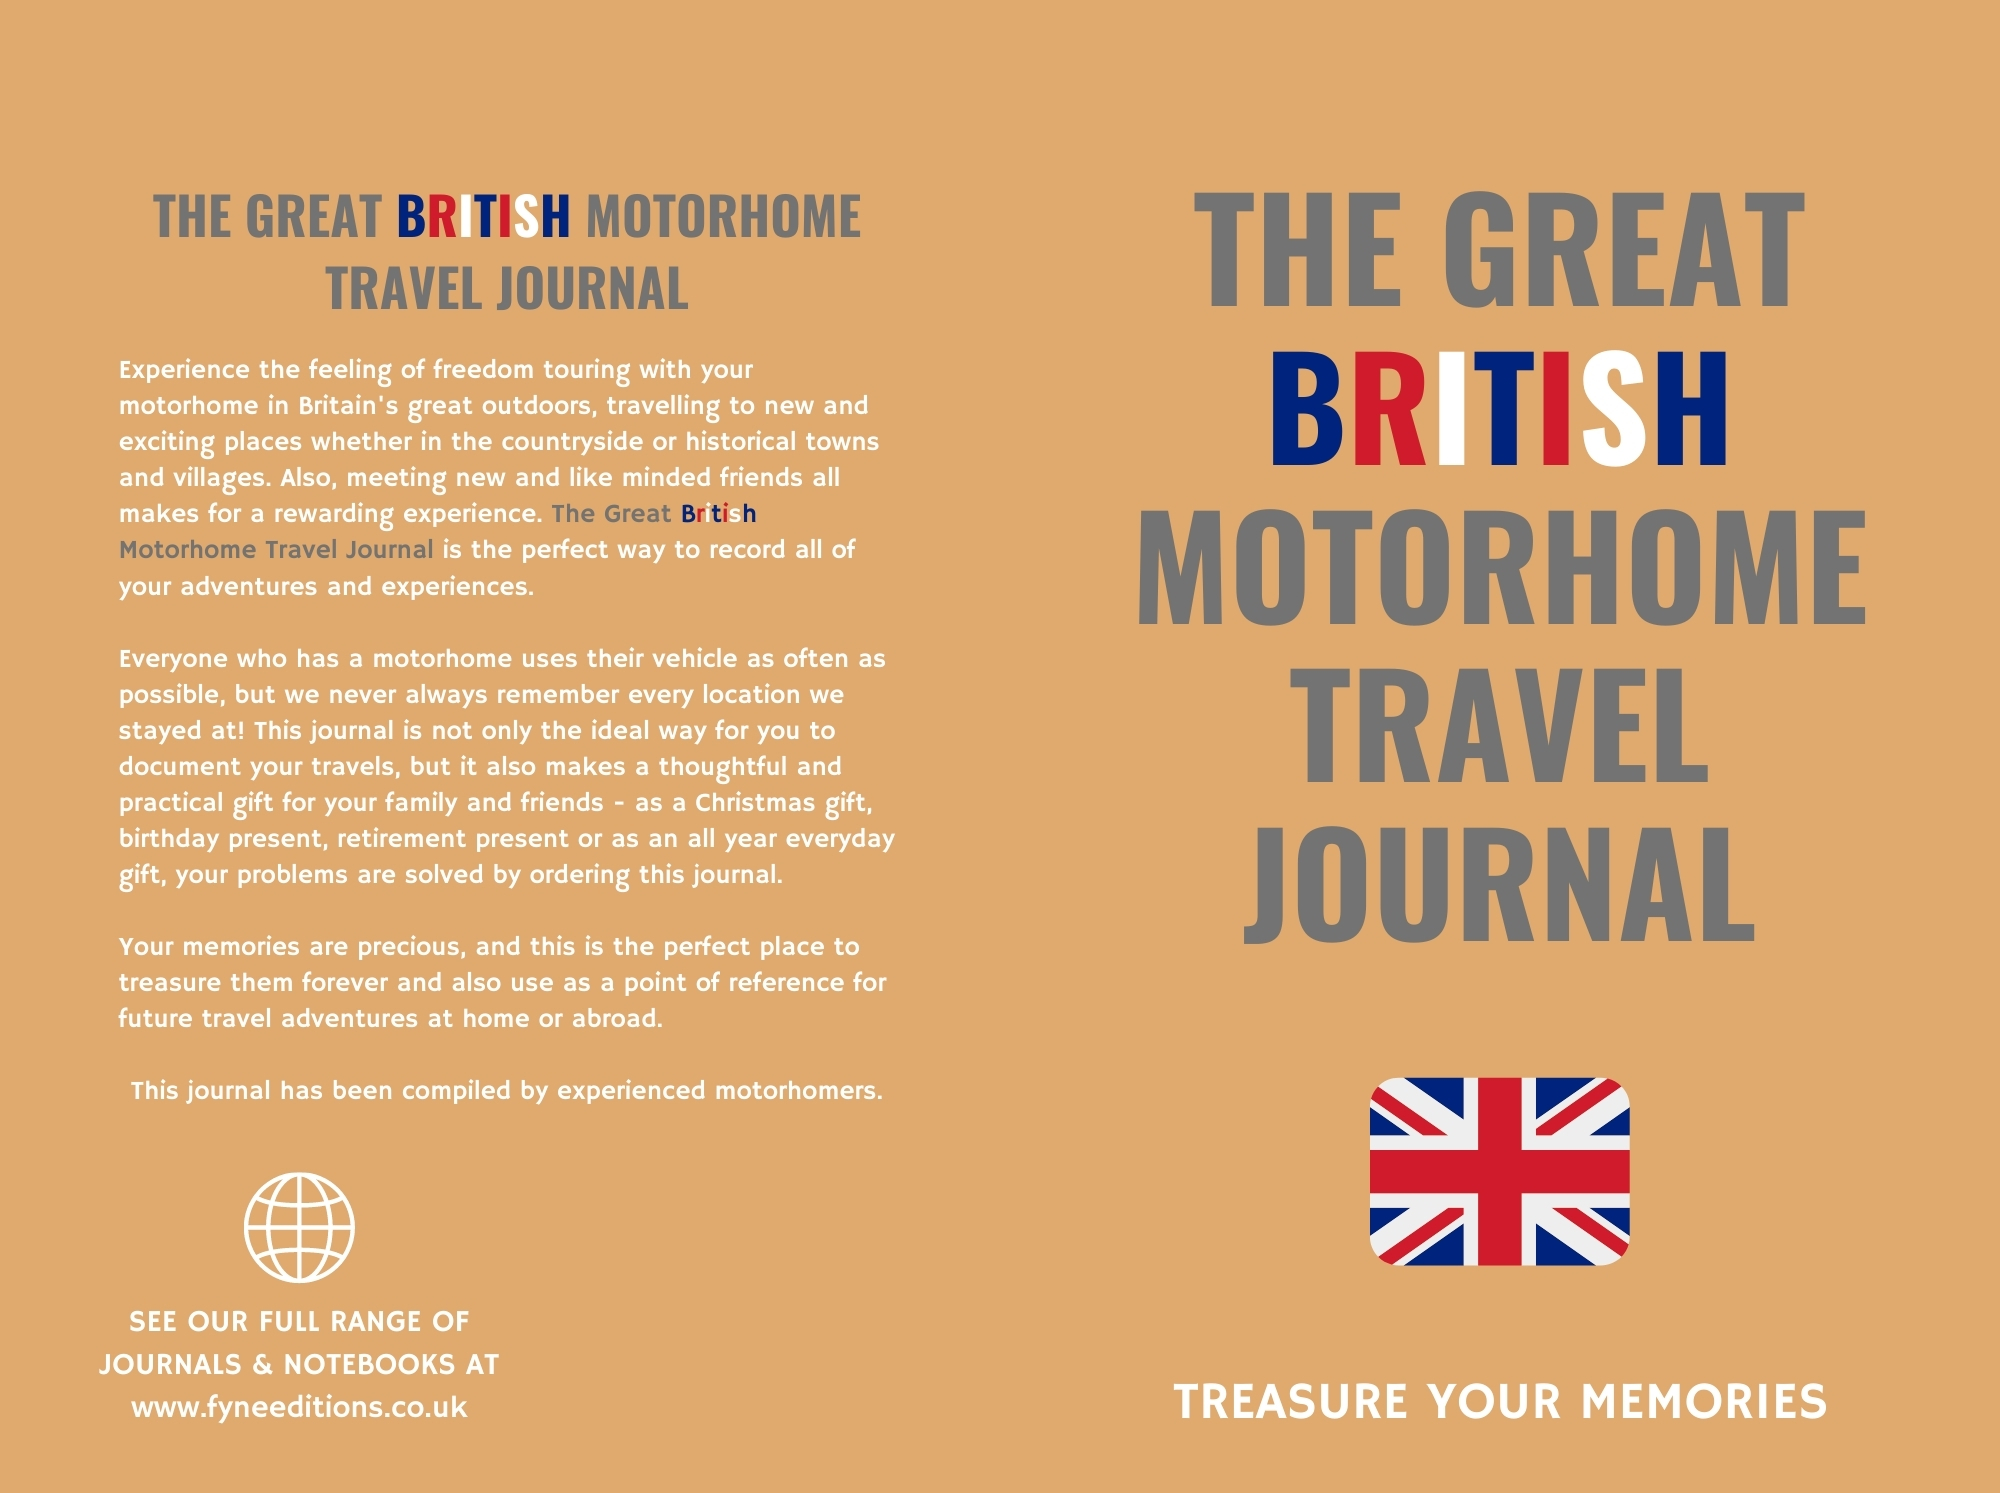 The Great British Motorhome Travel Journal